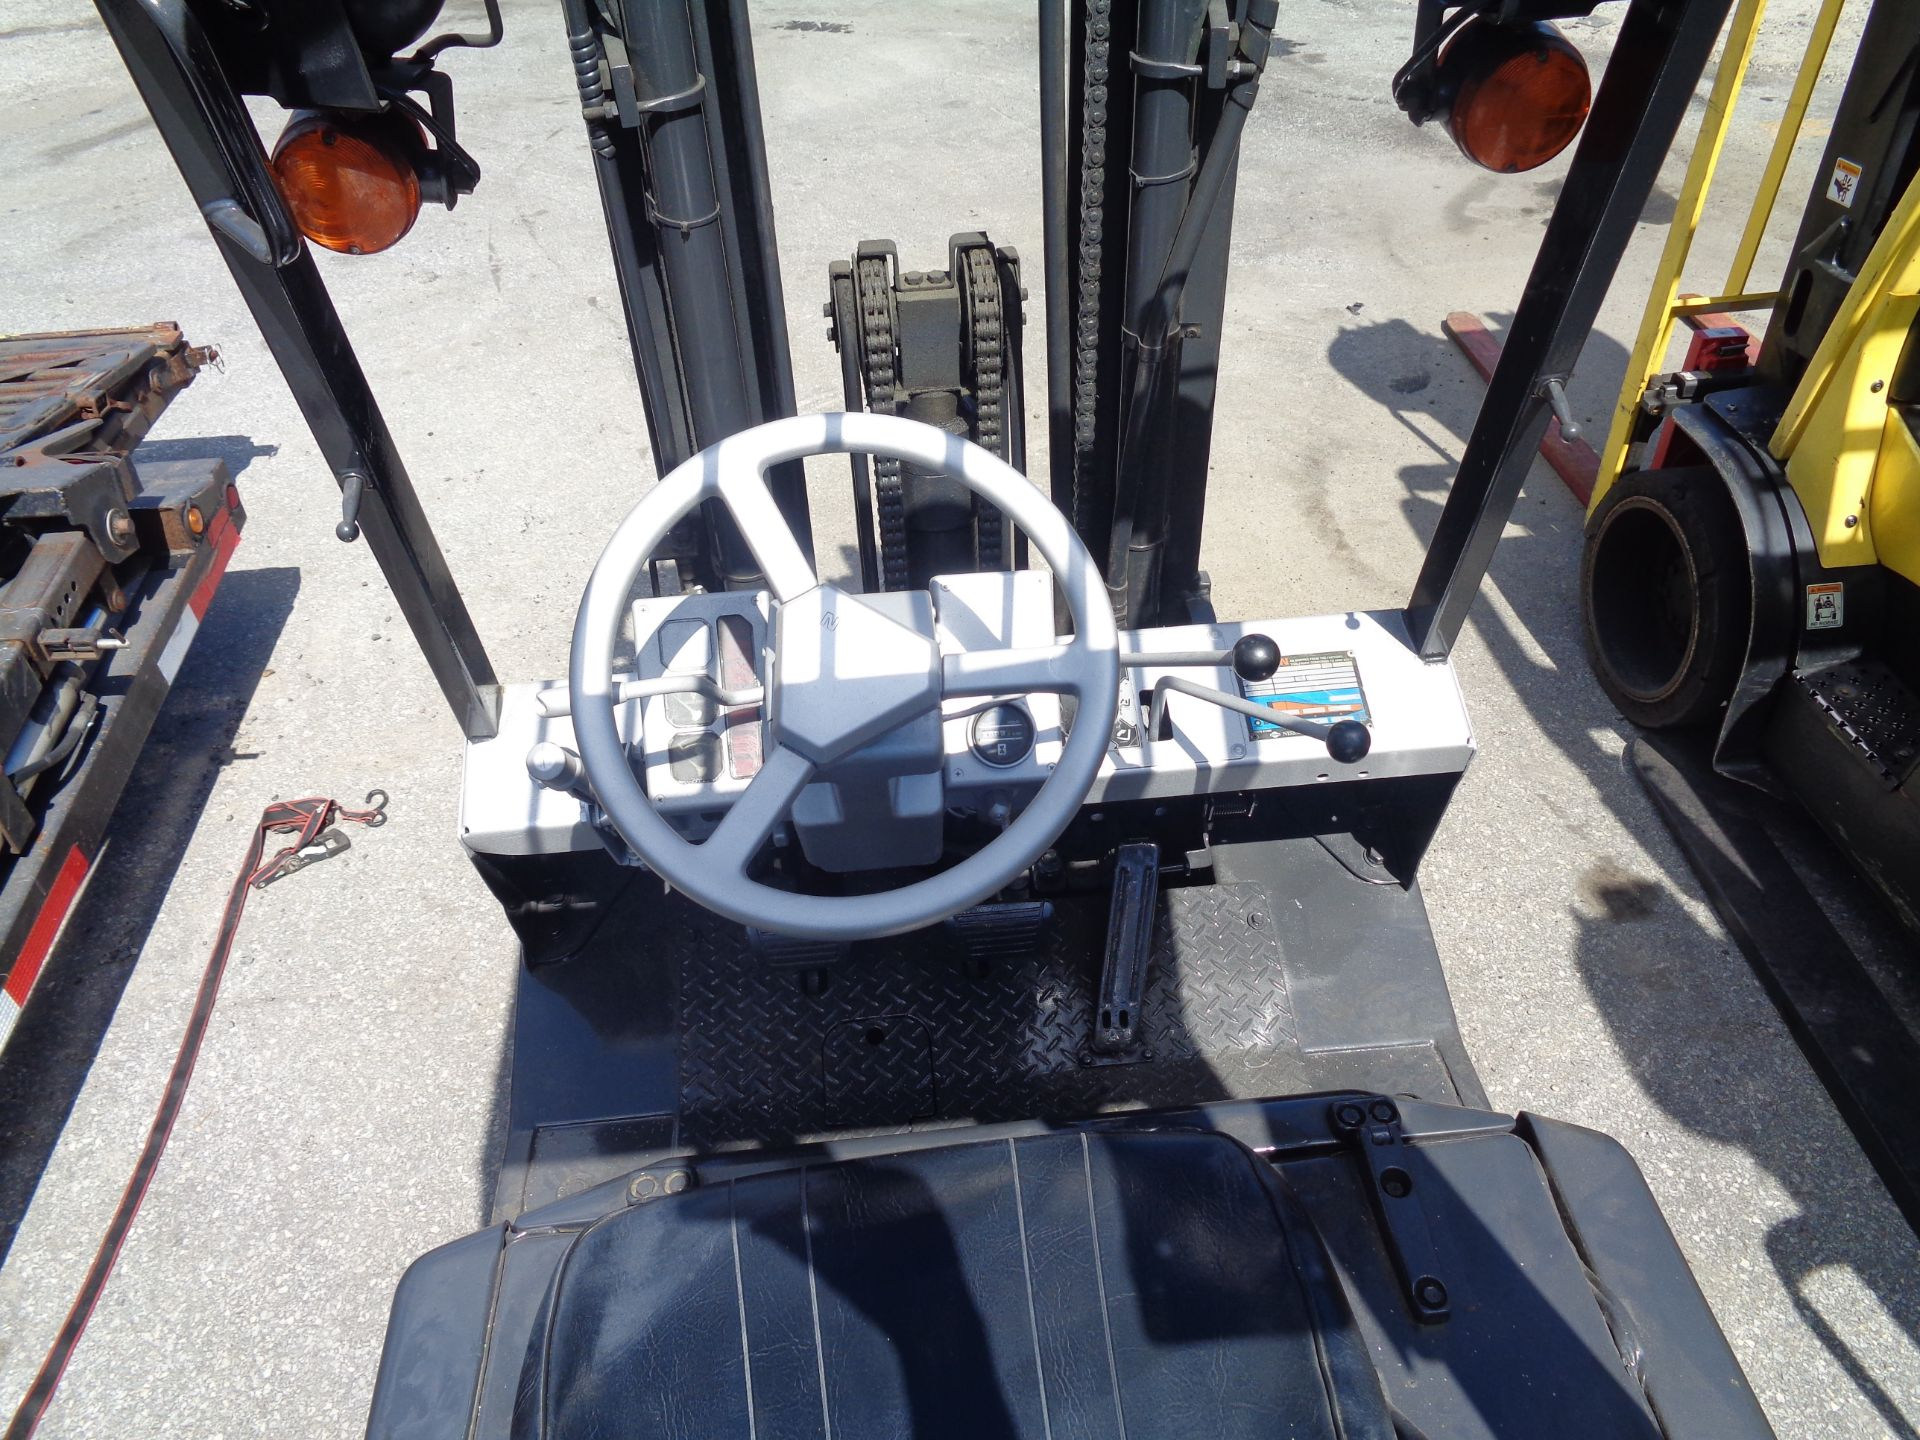 Nissan KCPH02A25PV 4,400 lb Forklift - Image 16 of 17